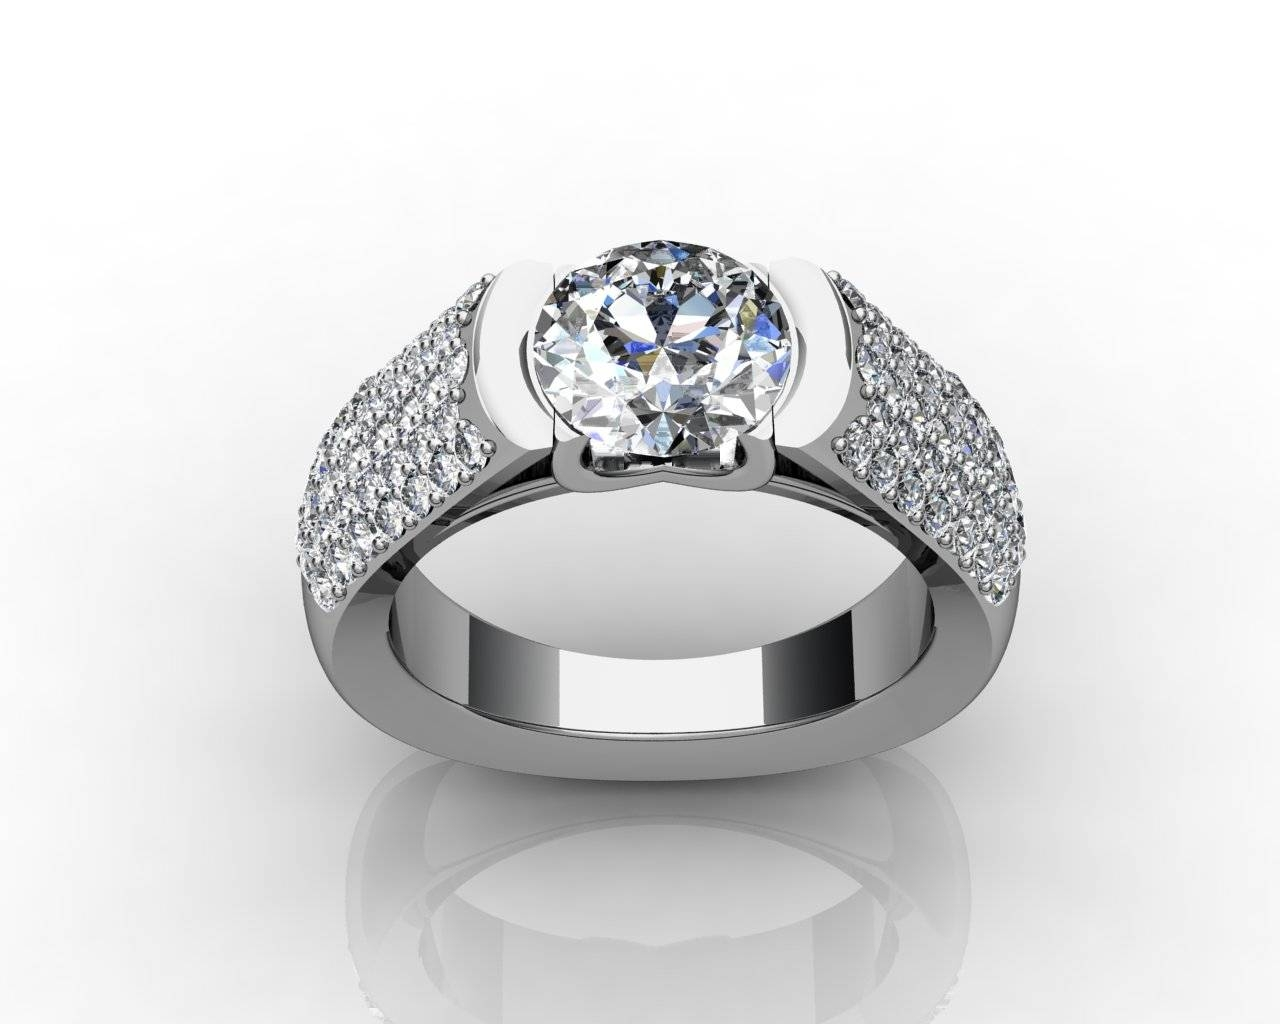 Jewel Technik Intended For Mens Engagement Rings Cartier (View 4 of 15)